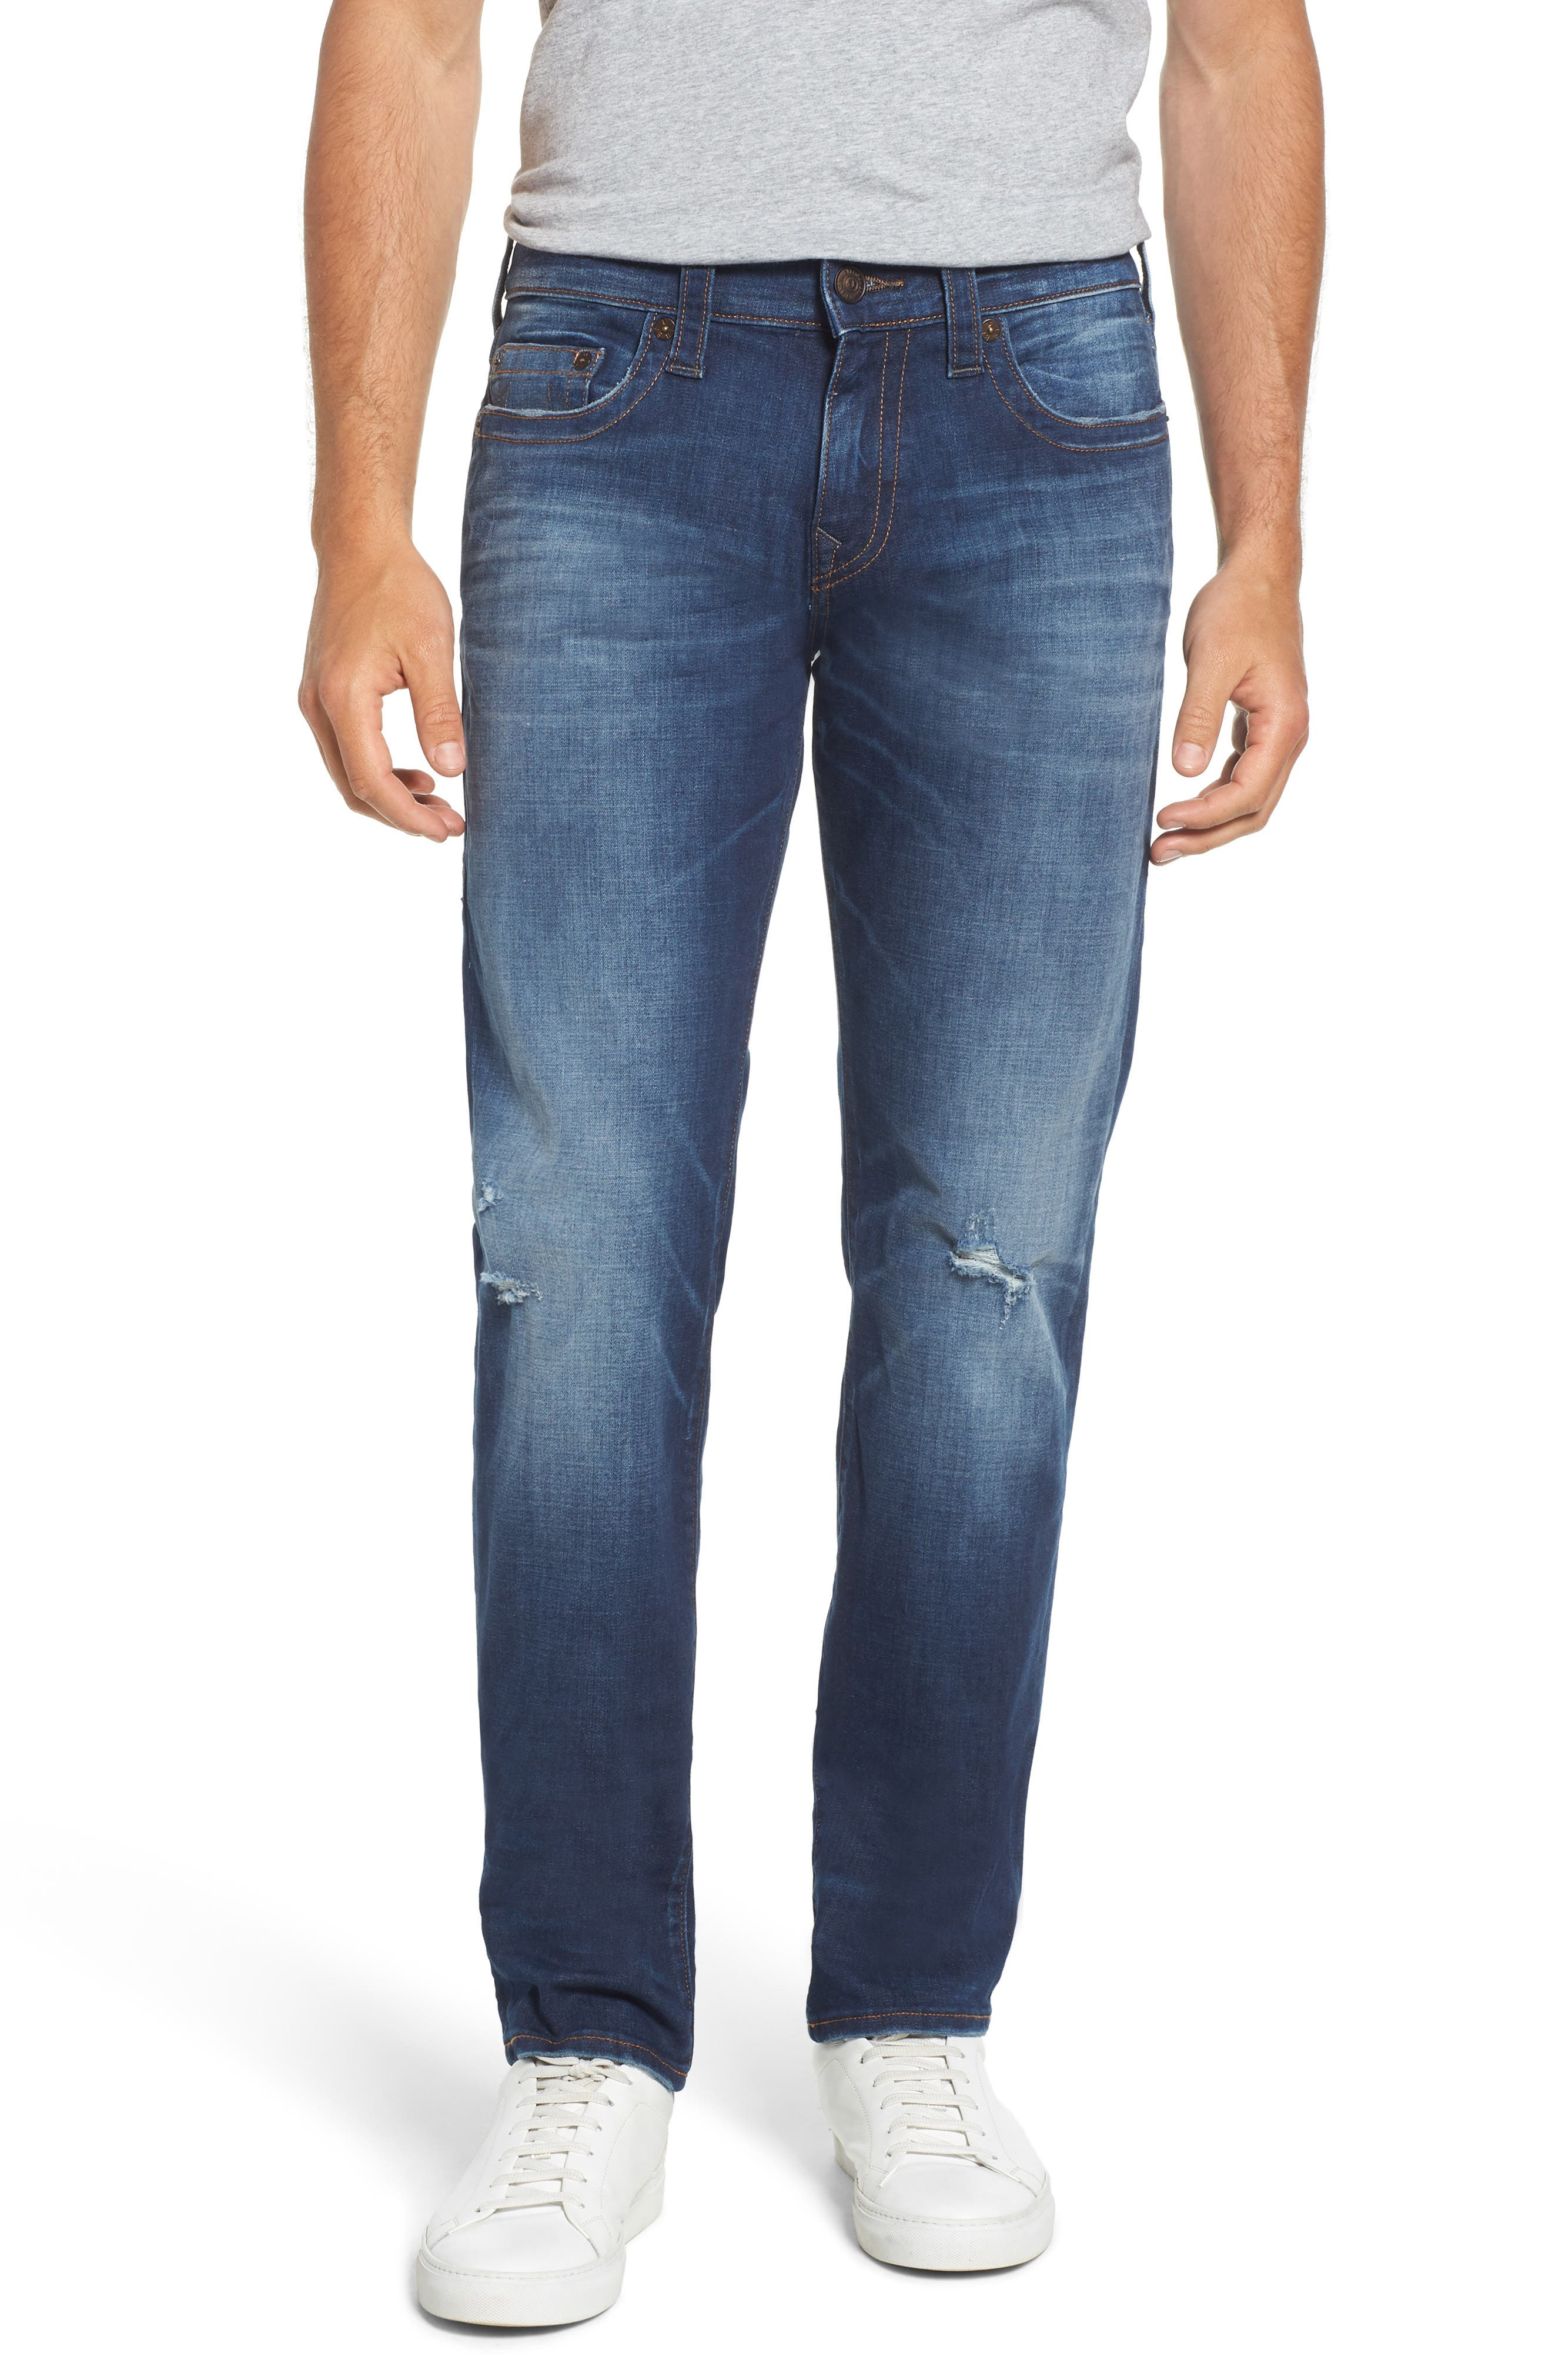 Geno Straight Leg Jeans,                             Main thumbnail 1, color,                             SUSPECT